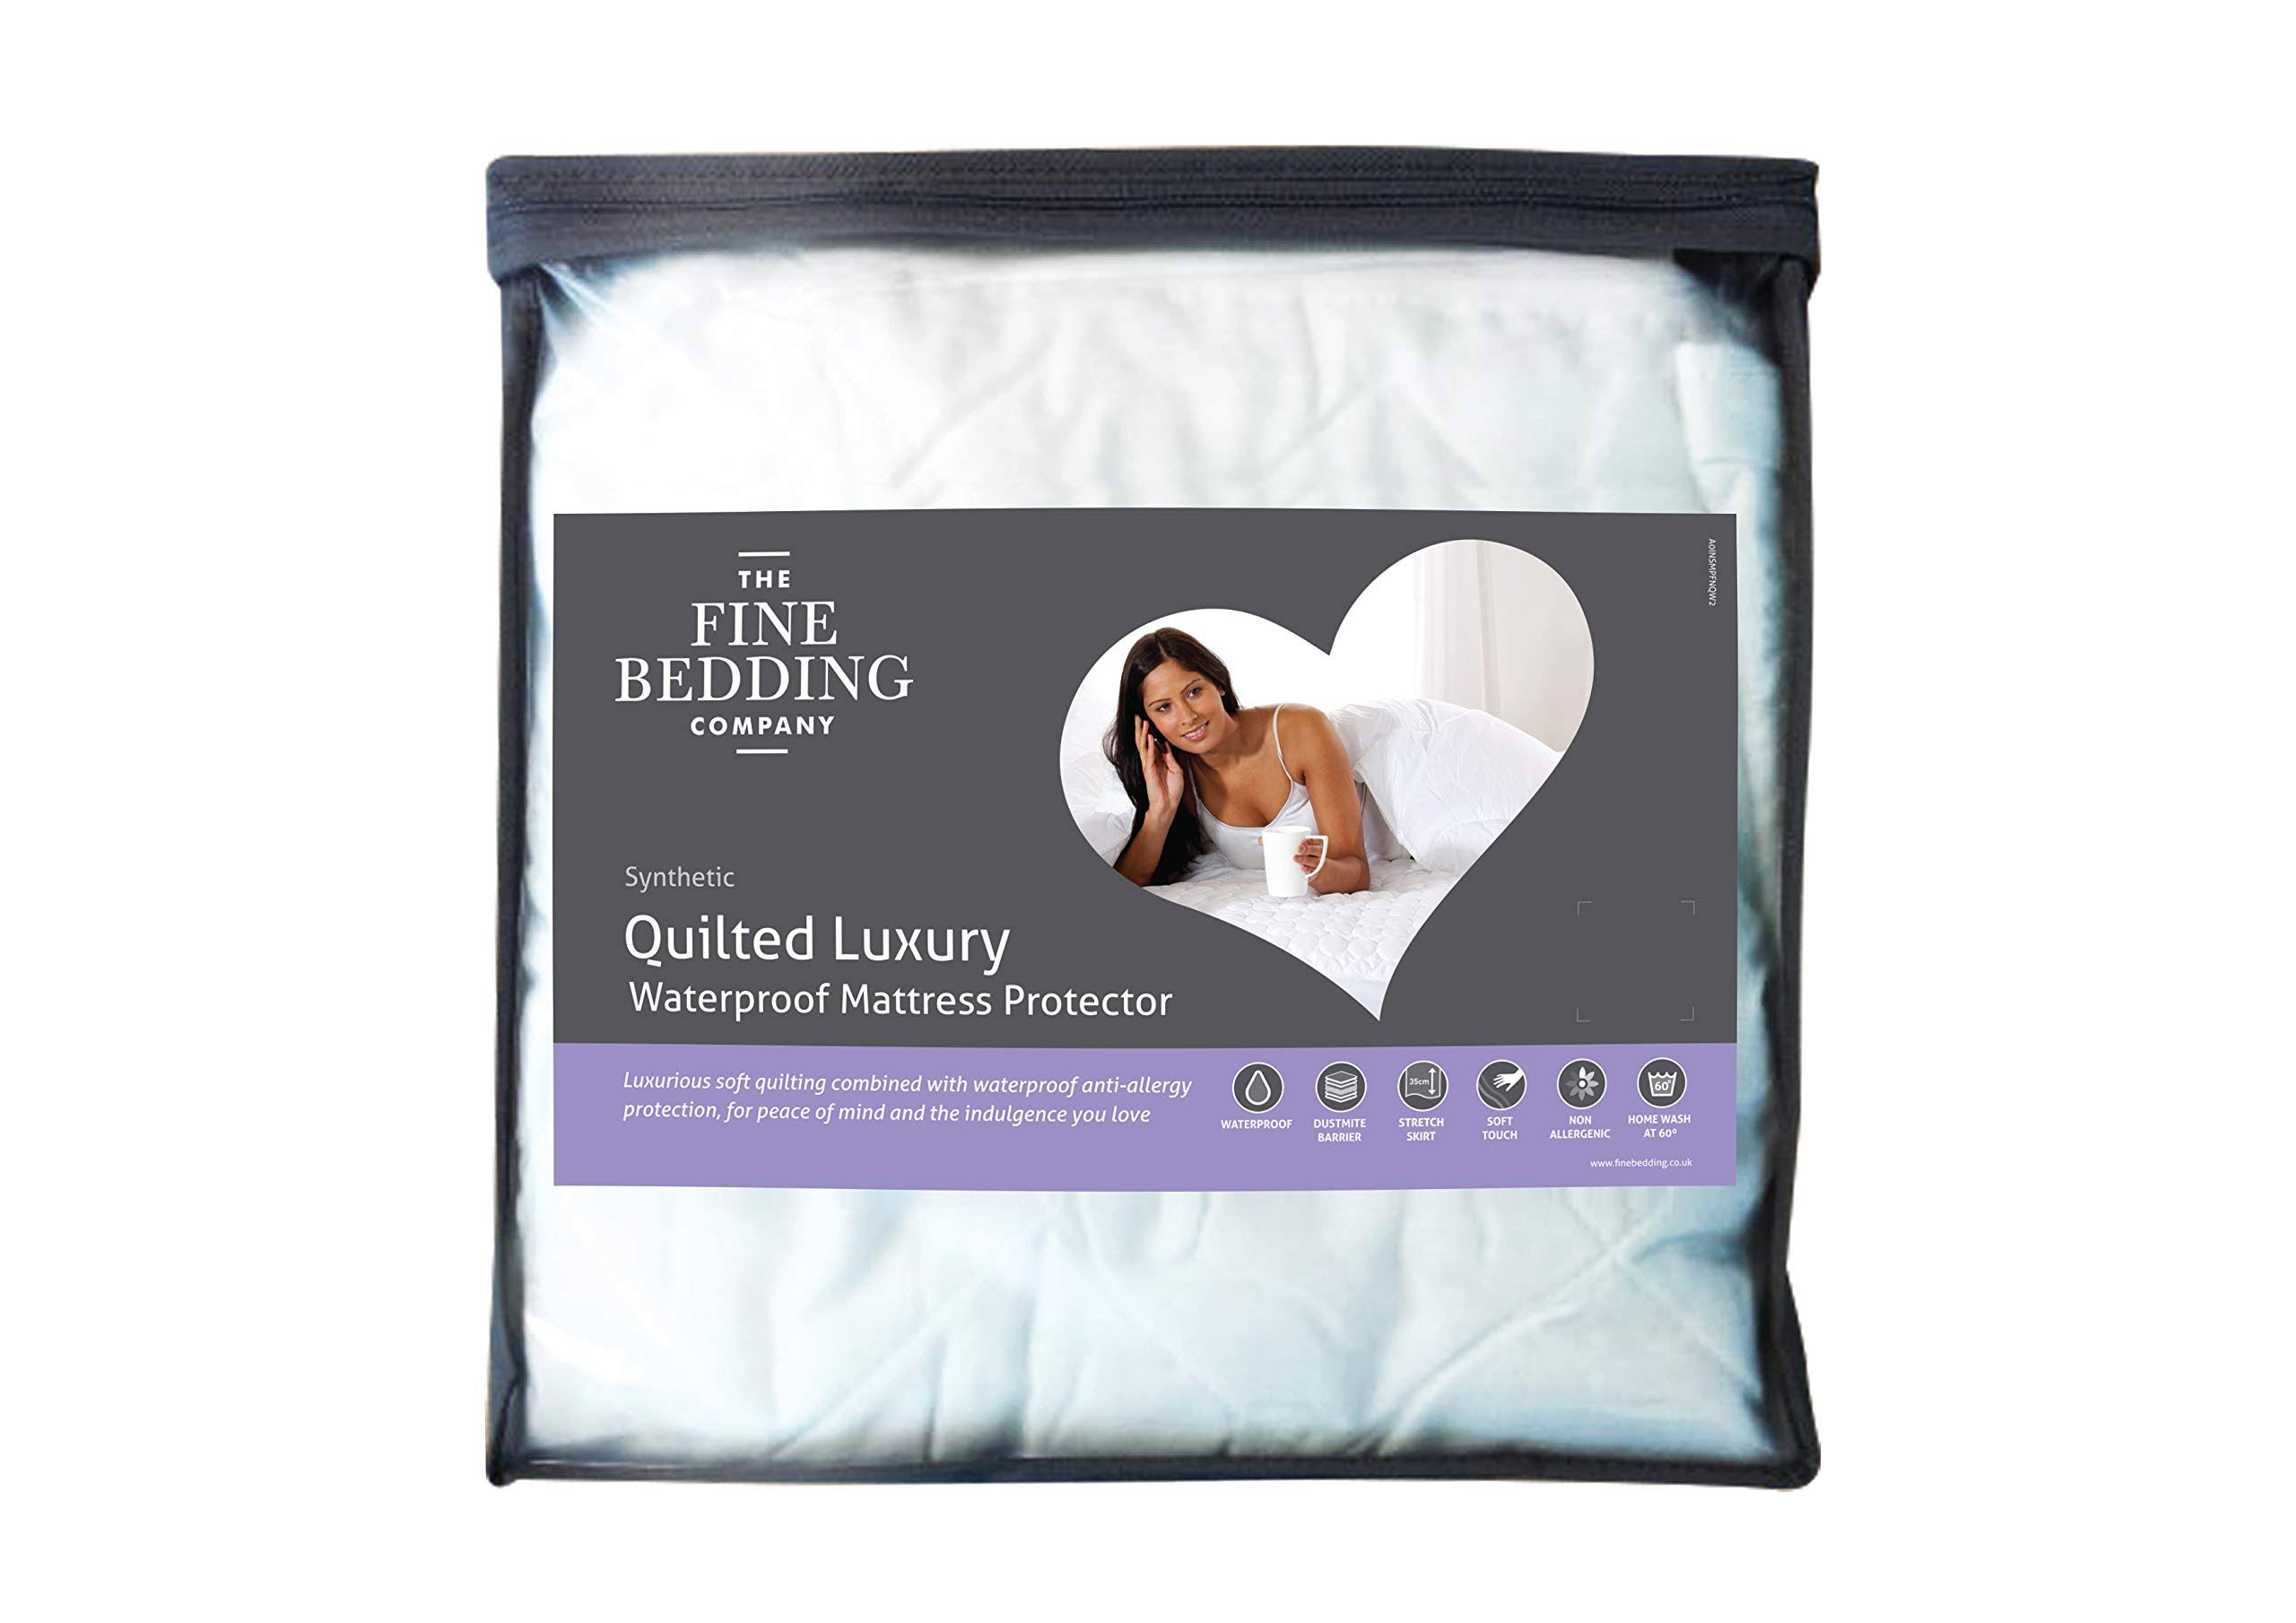 The Fine Bedding Company, Quilted Luxury Waterproof Mattress Protectors